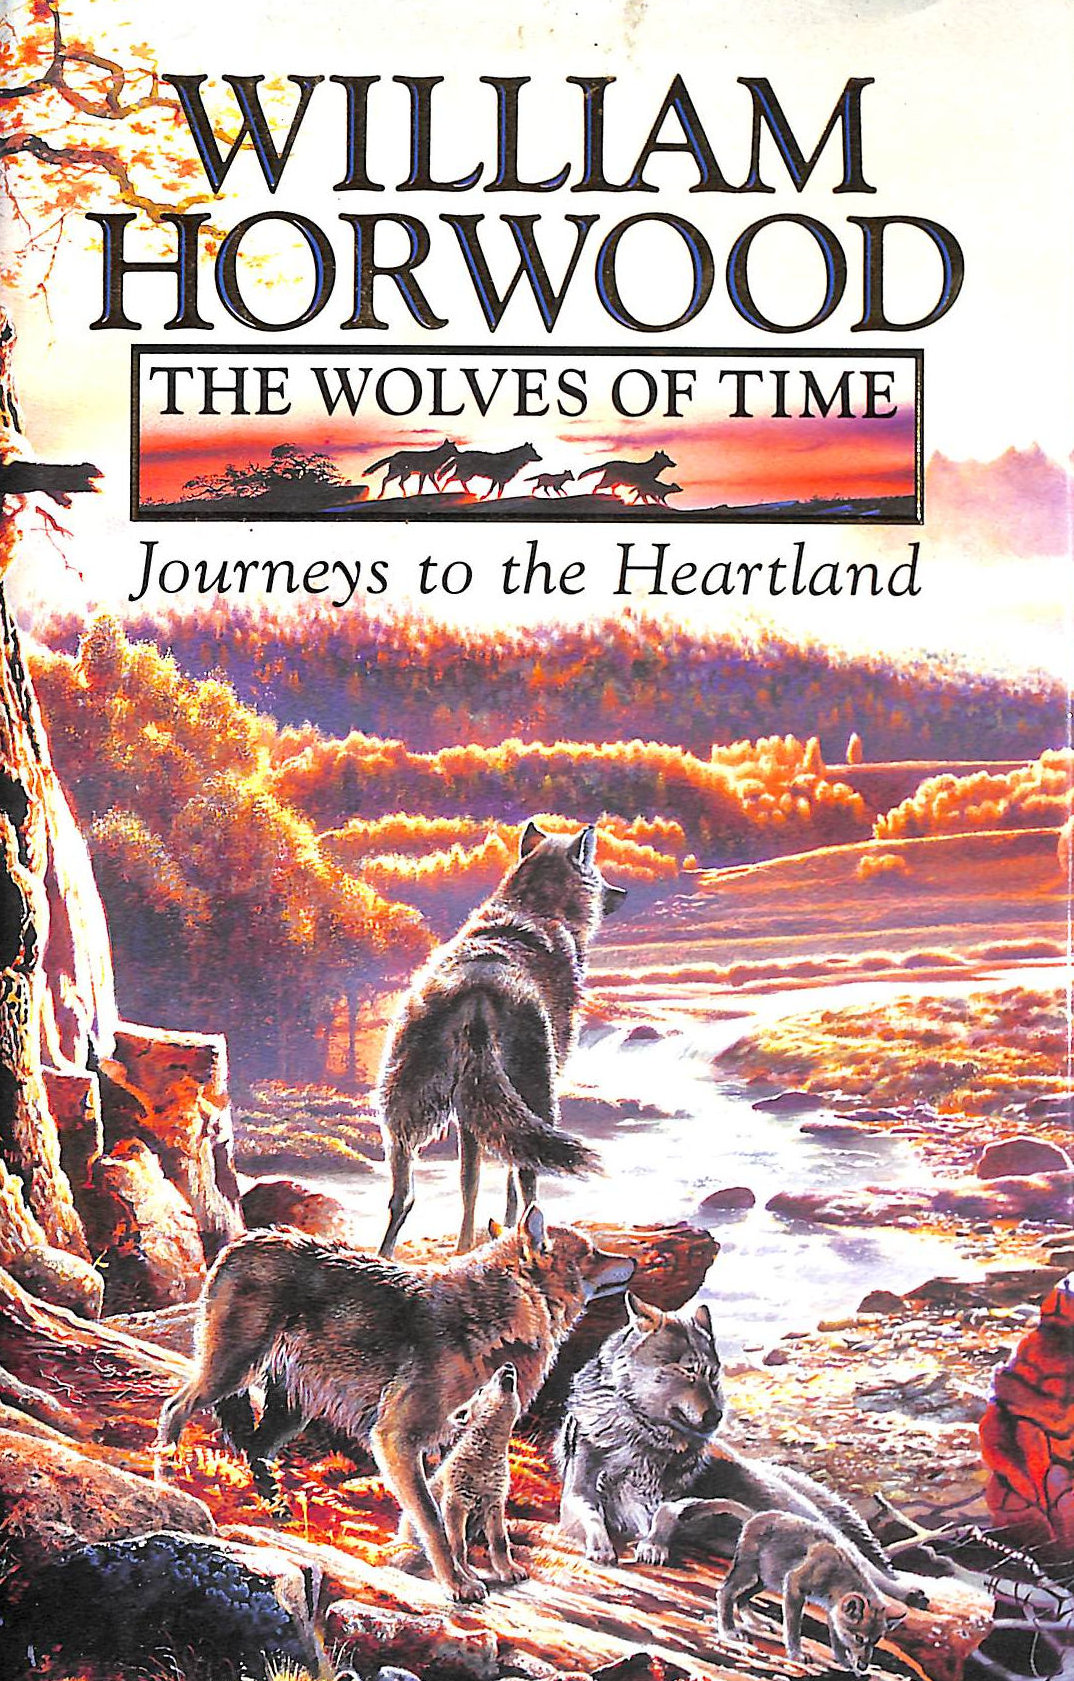 HORWOOD, WILLIAM - The Wolves Of Time (1) Journeys To The Heartland: Journeys To The Heartland V. 1